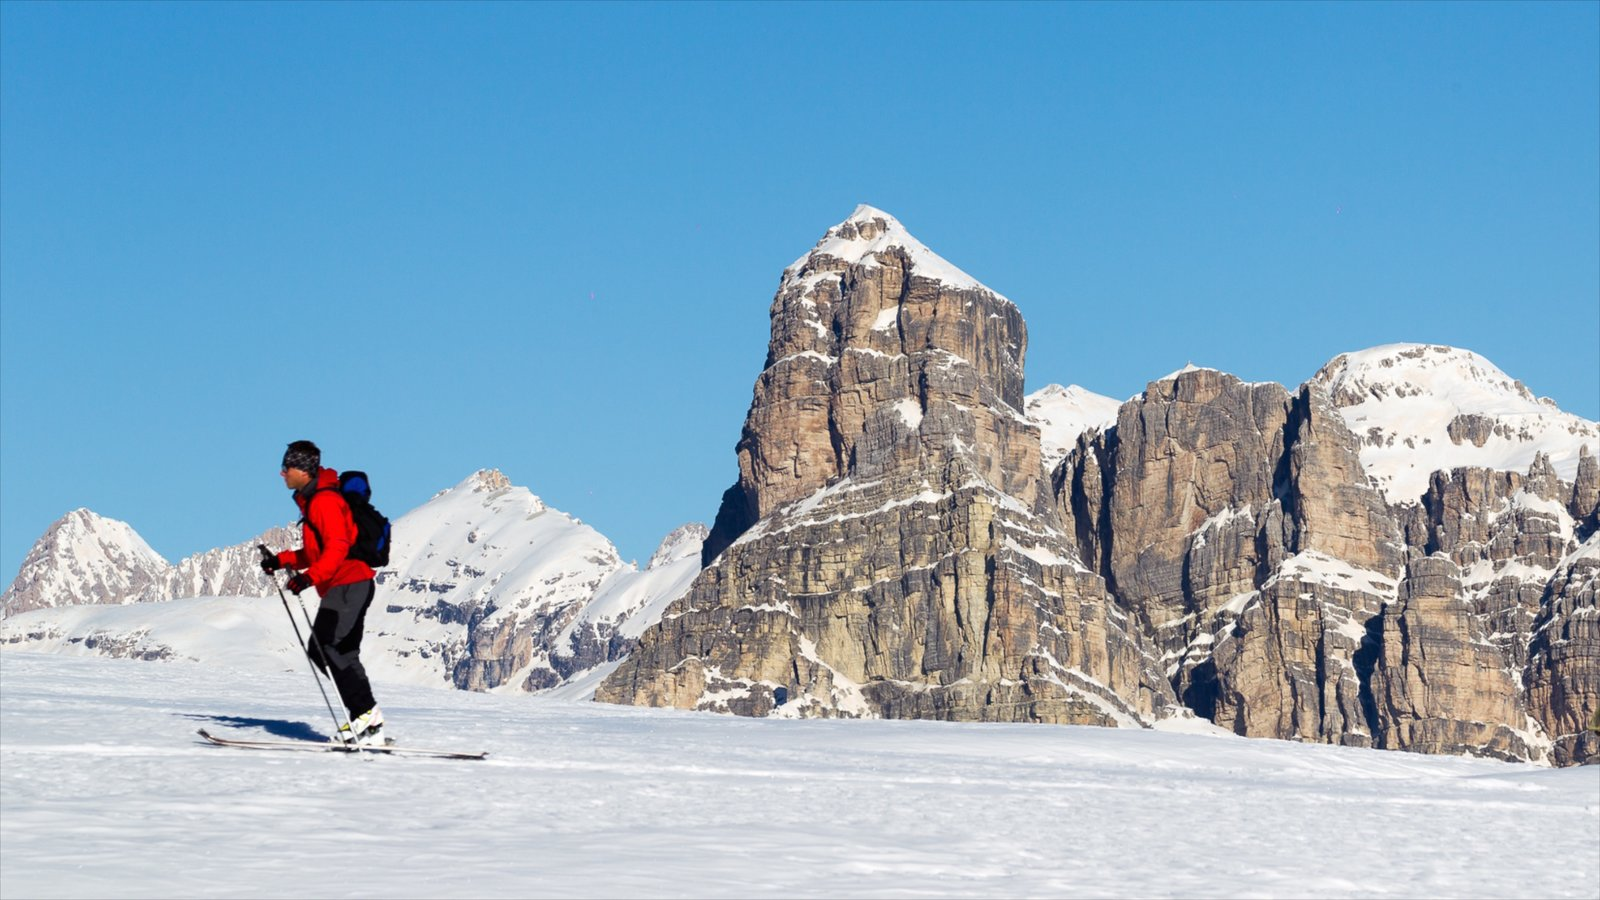 Alta Badia featuring snow skiing and snow